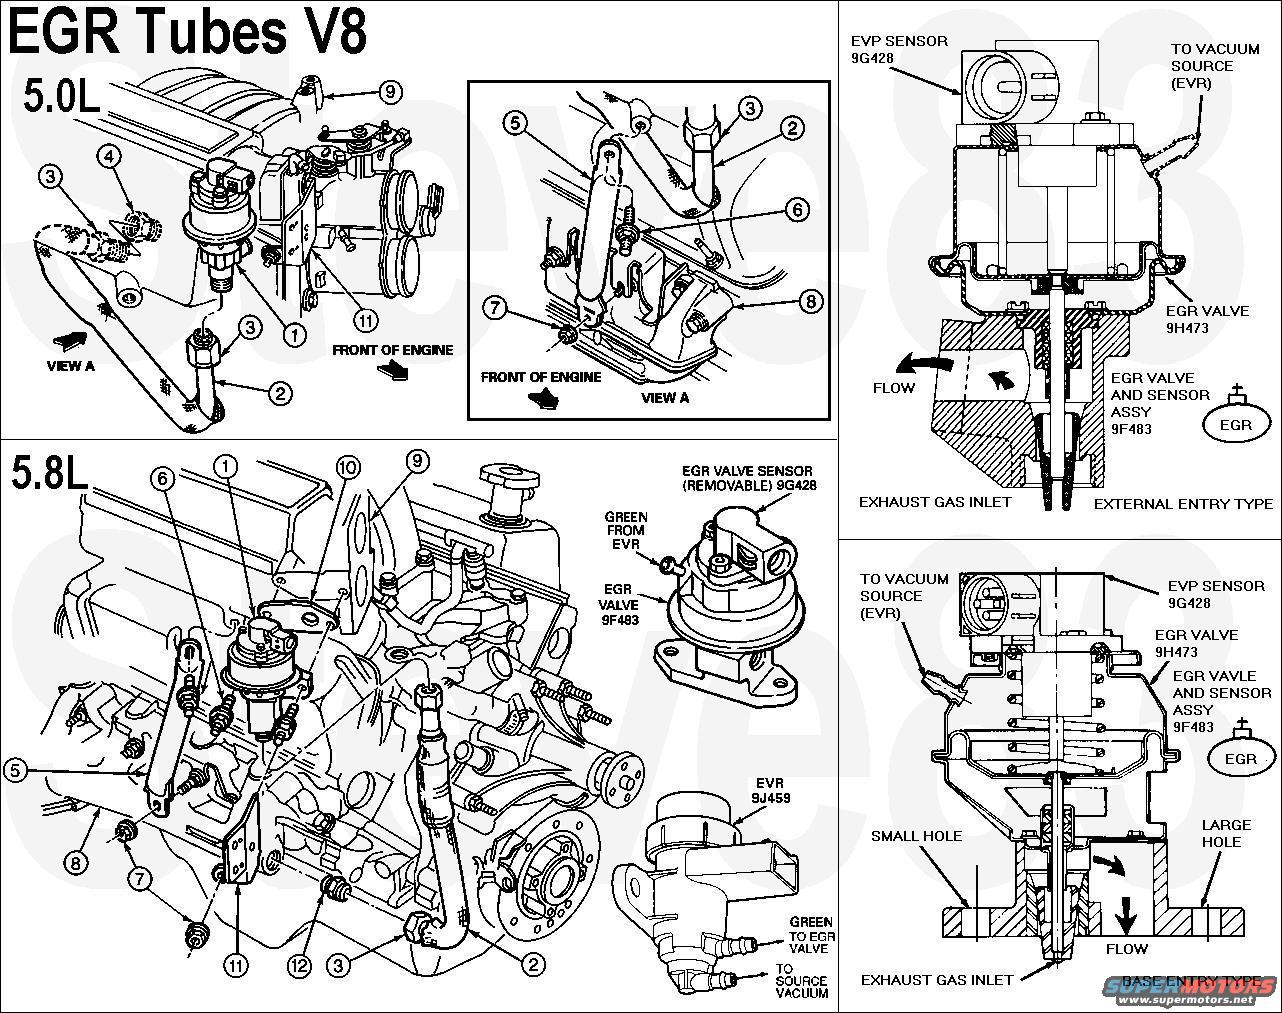 Ignition Wiring Diagram For 1994 Suzuki Swift also 826382 1 as well Index2 besides 92 Suzuki Samurai Wiring Diagram in addition 94 Town Car Fuel Sending Unit Wiring Diagram. on 1990 geo tracker engine diagram